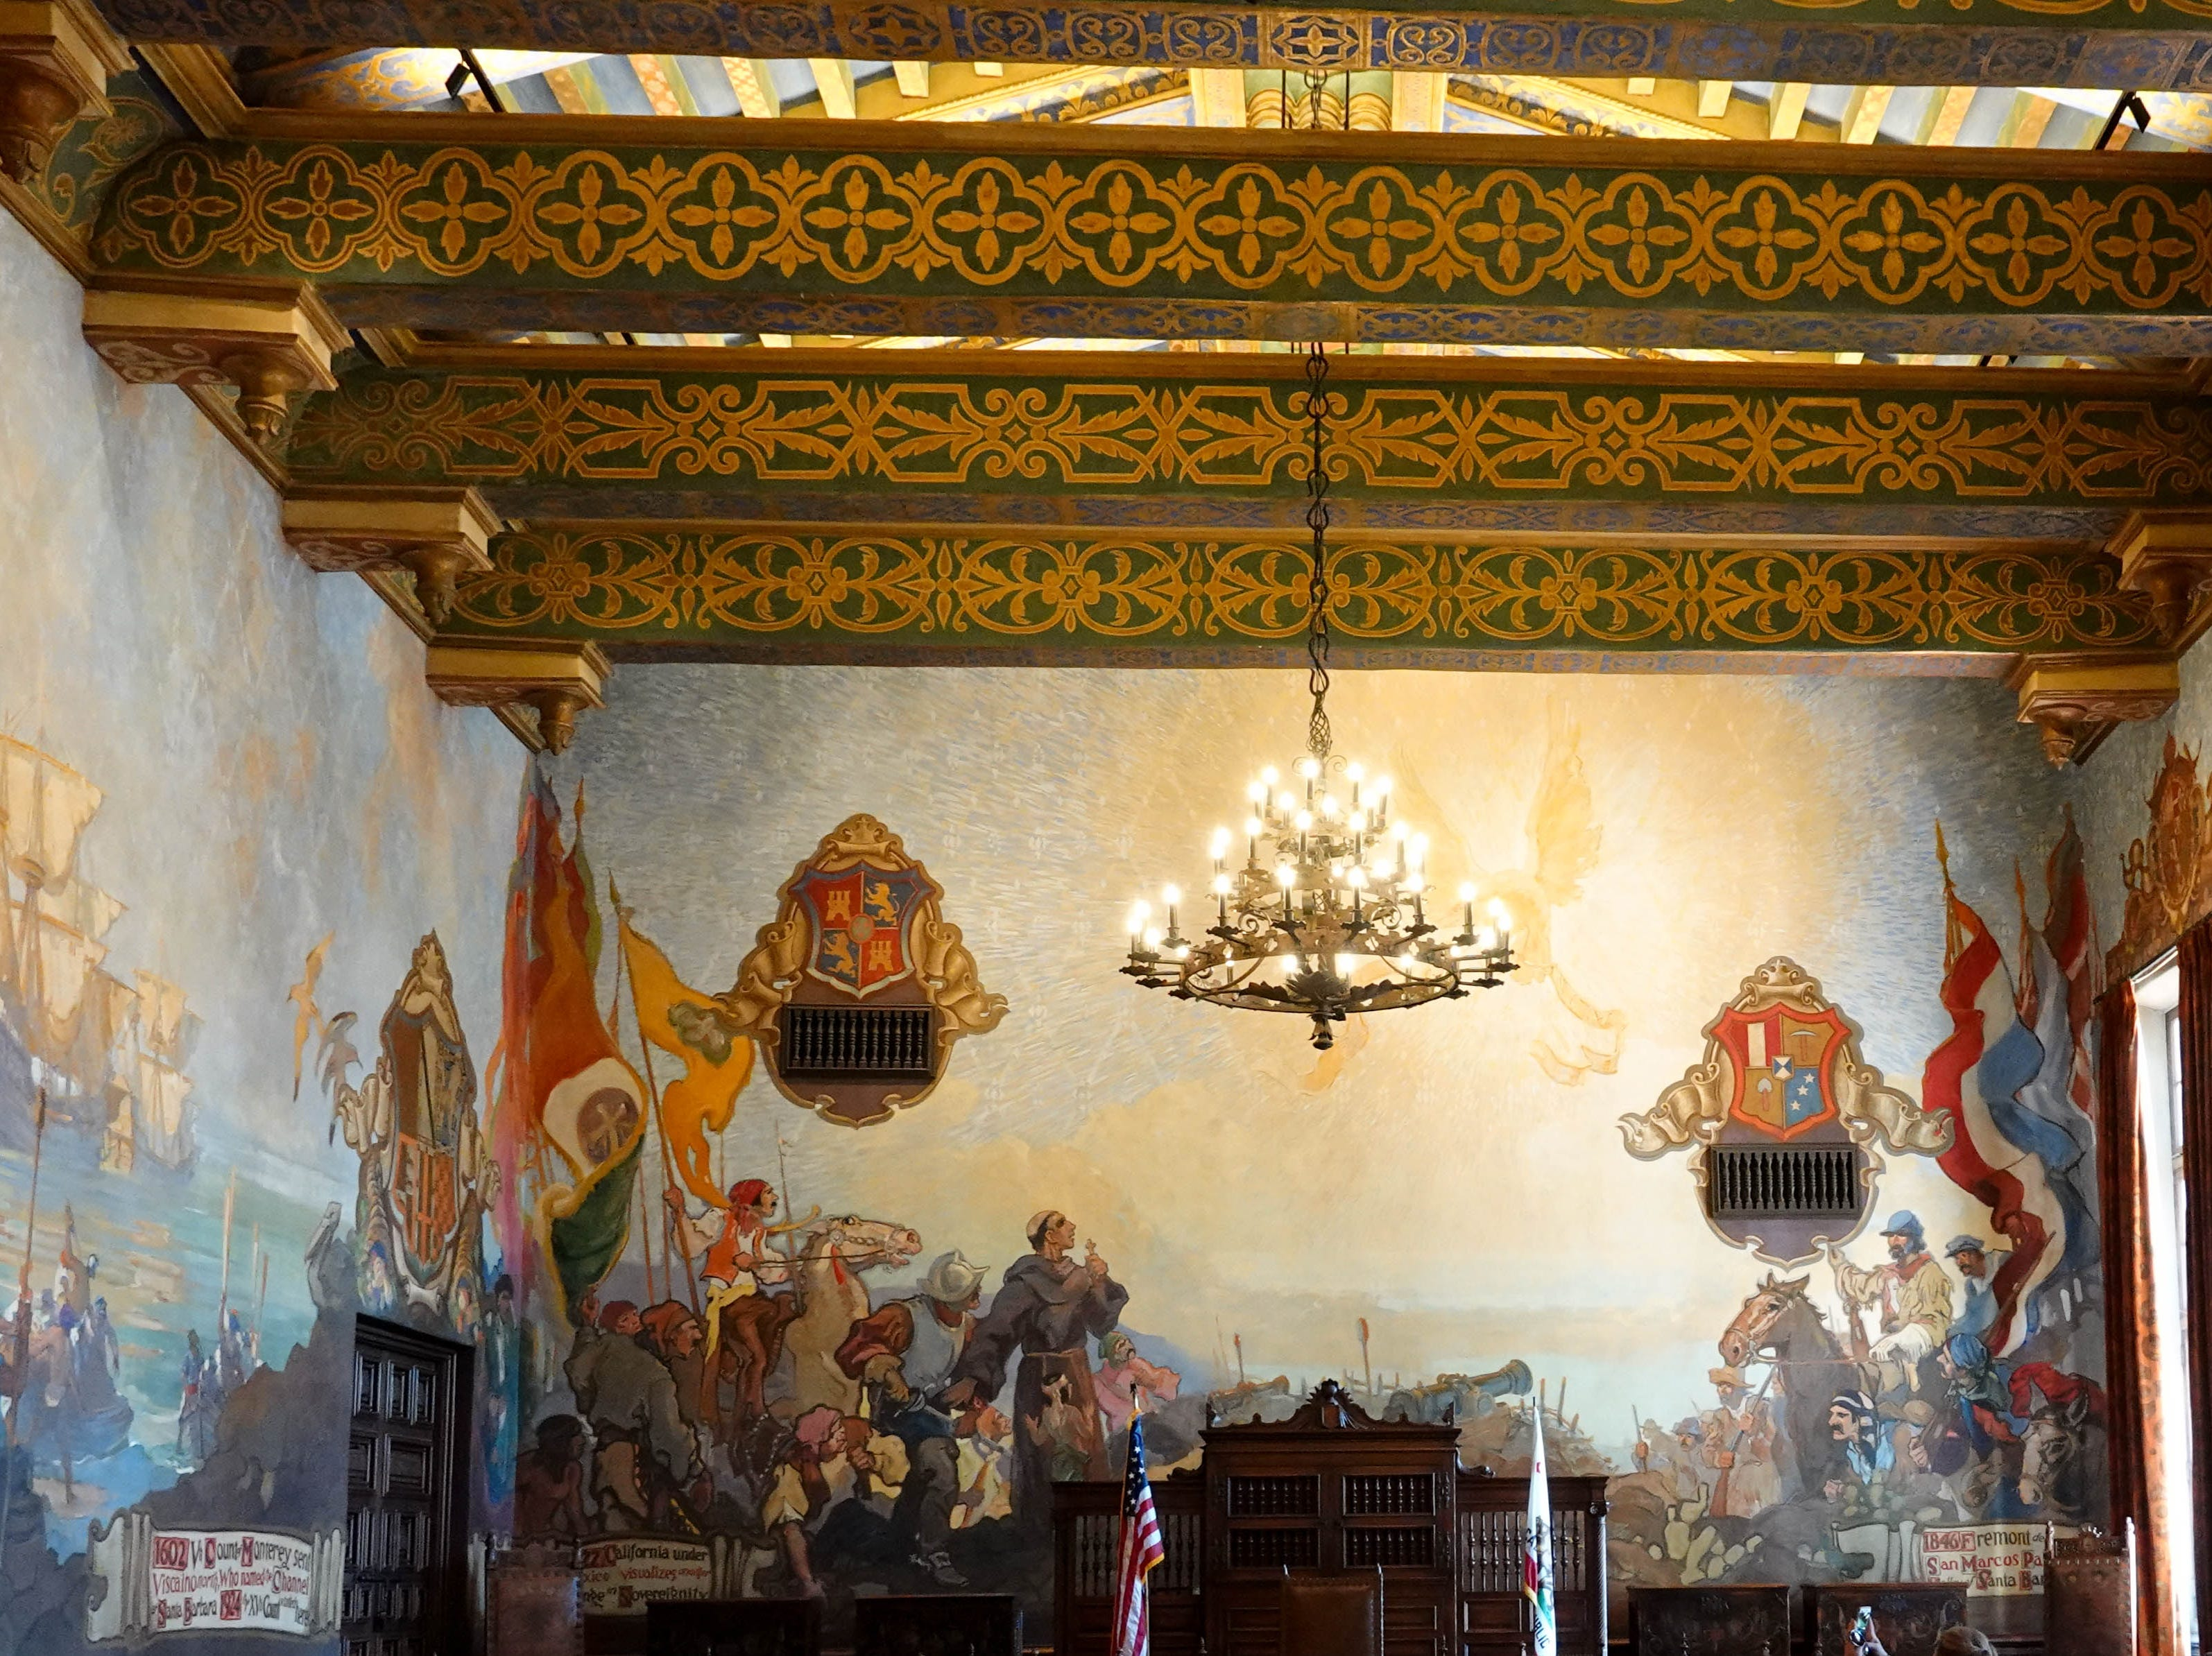 Interior of old court room at the Santa Barbara County Courthouse.